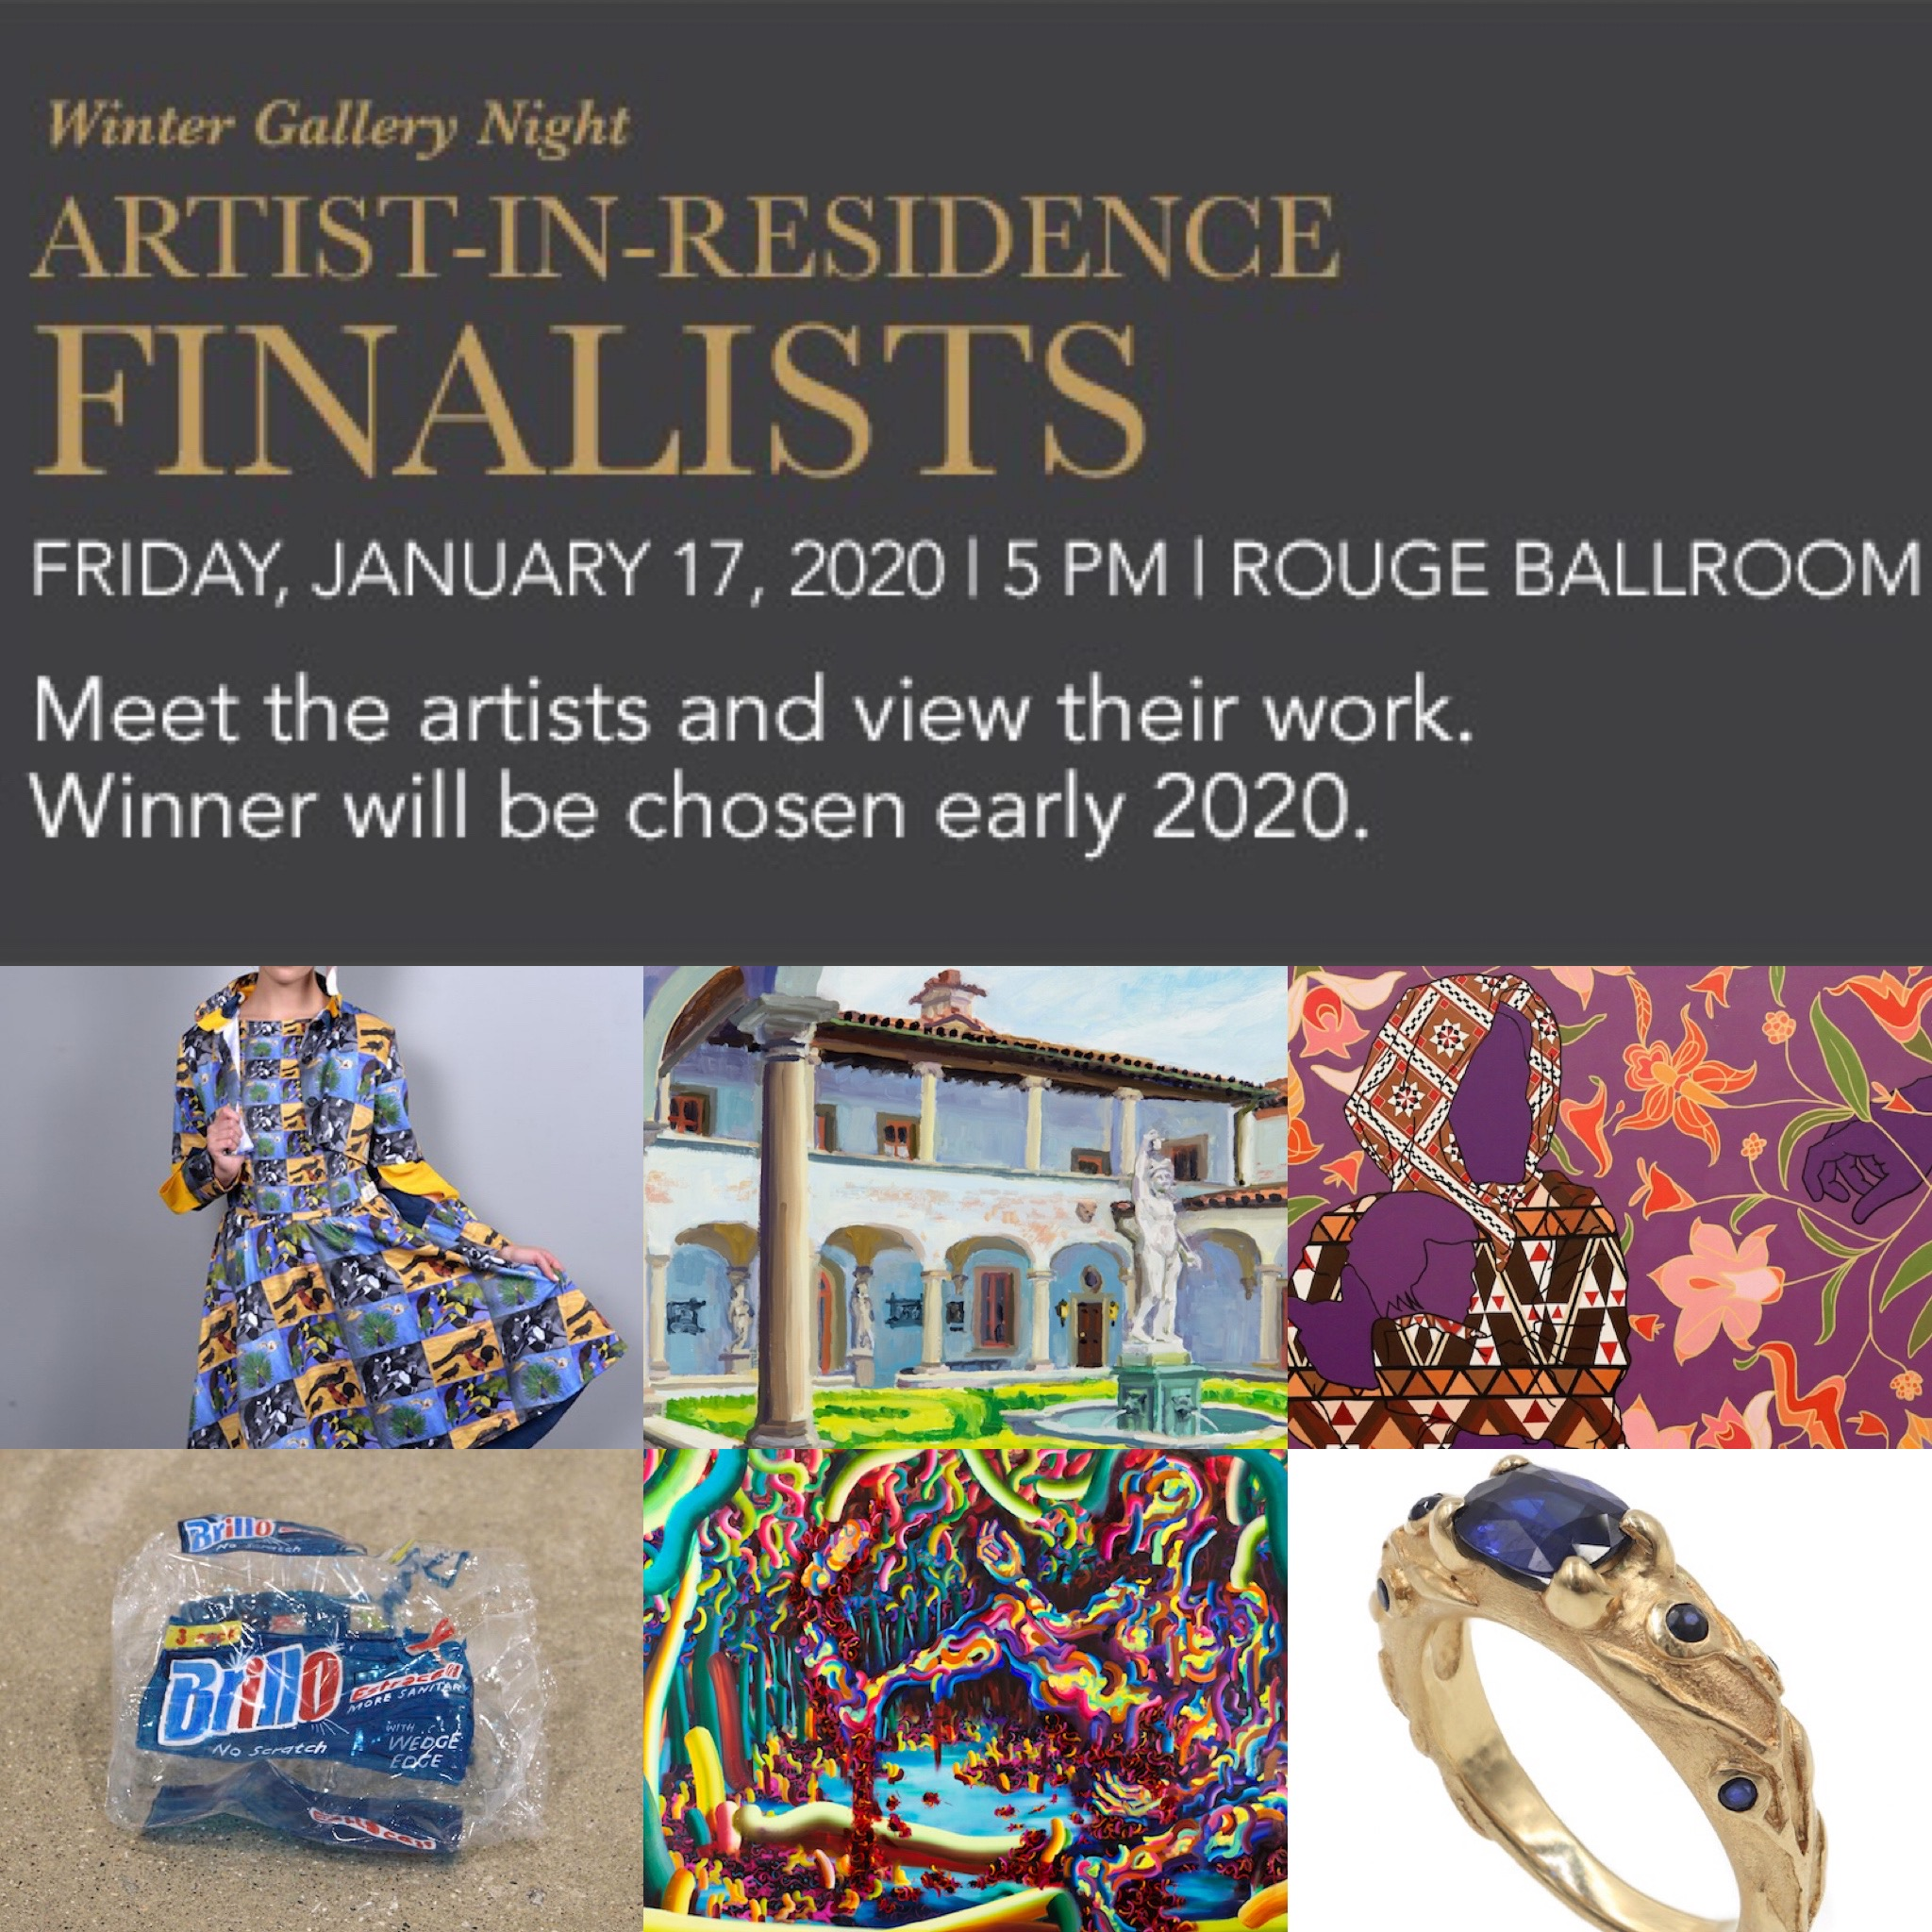 SIX FINALISTS NAMED FOR THE PFISTER HOTEL'S 12TH ARTIST IN RESIDENCE